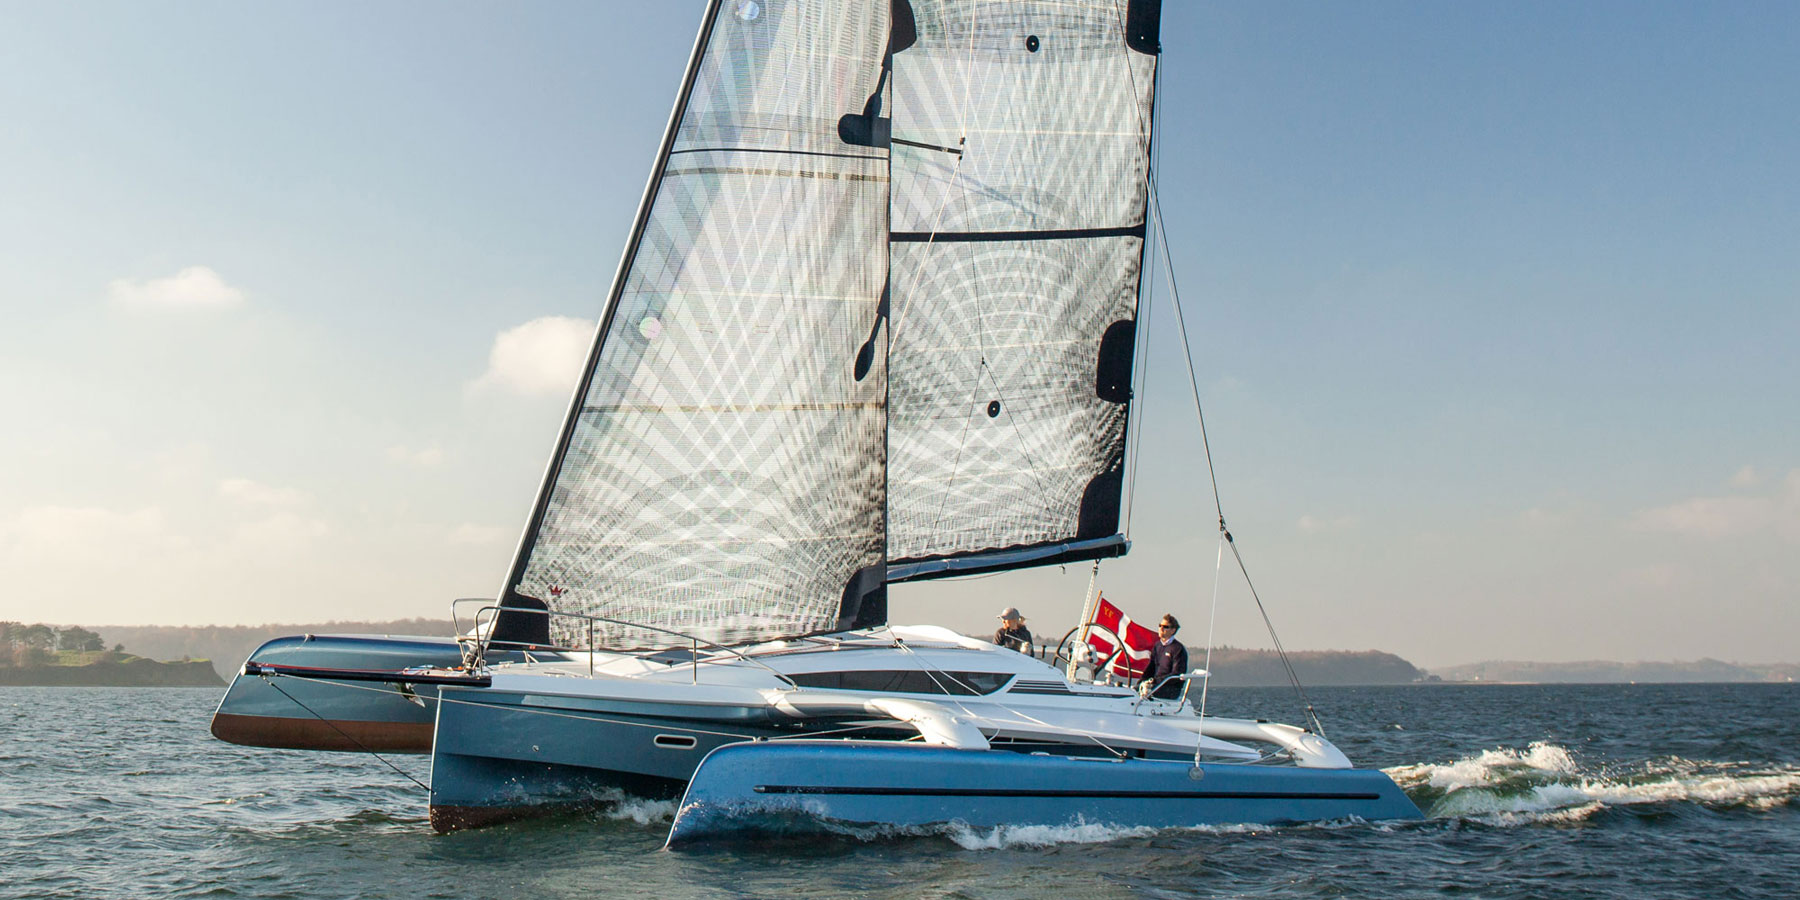 Dragonfly 32 Evolution trimaran sailing upwind